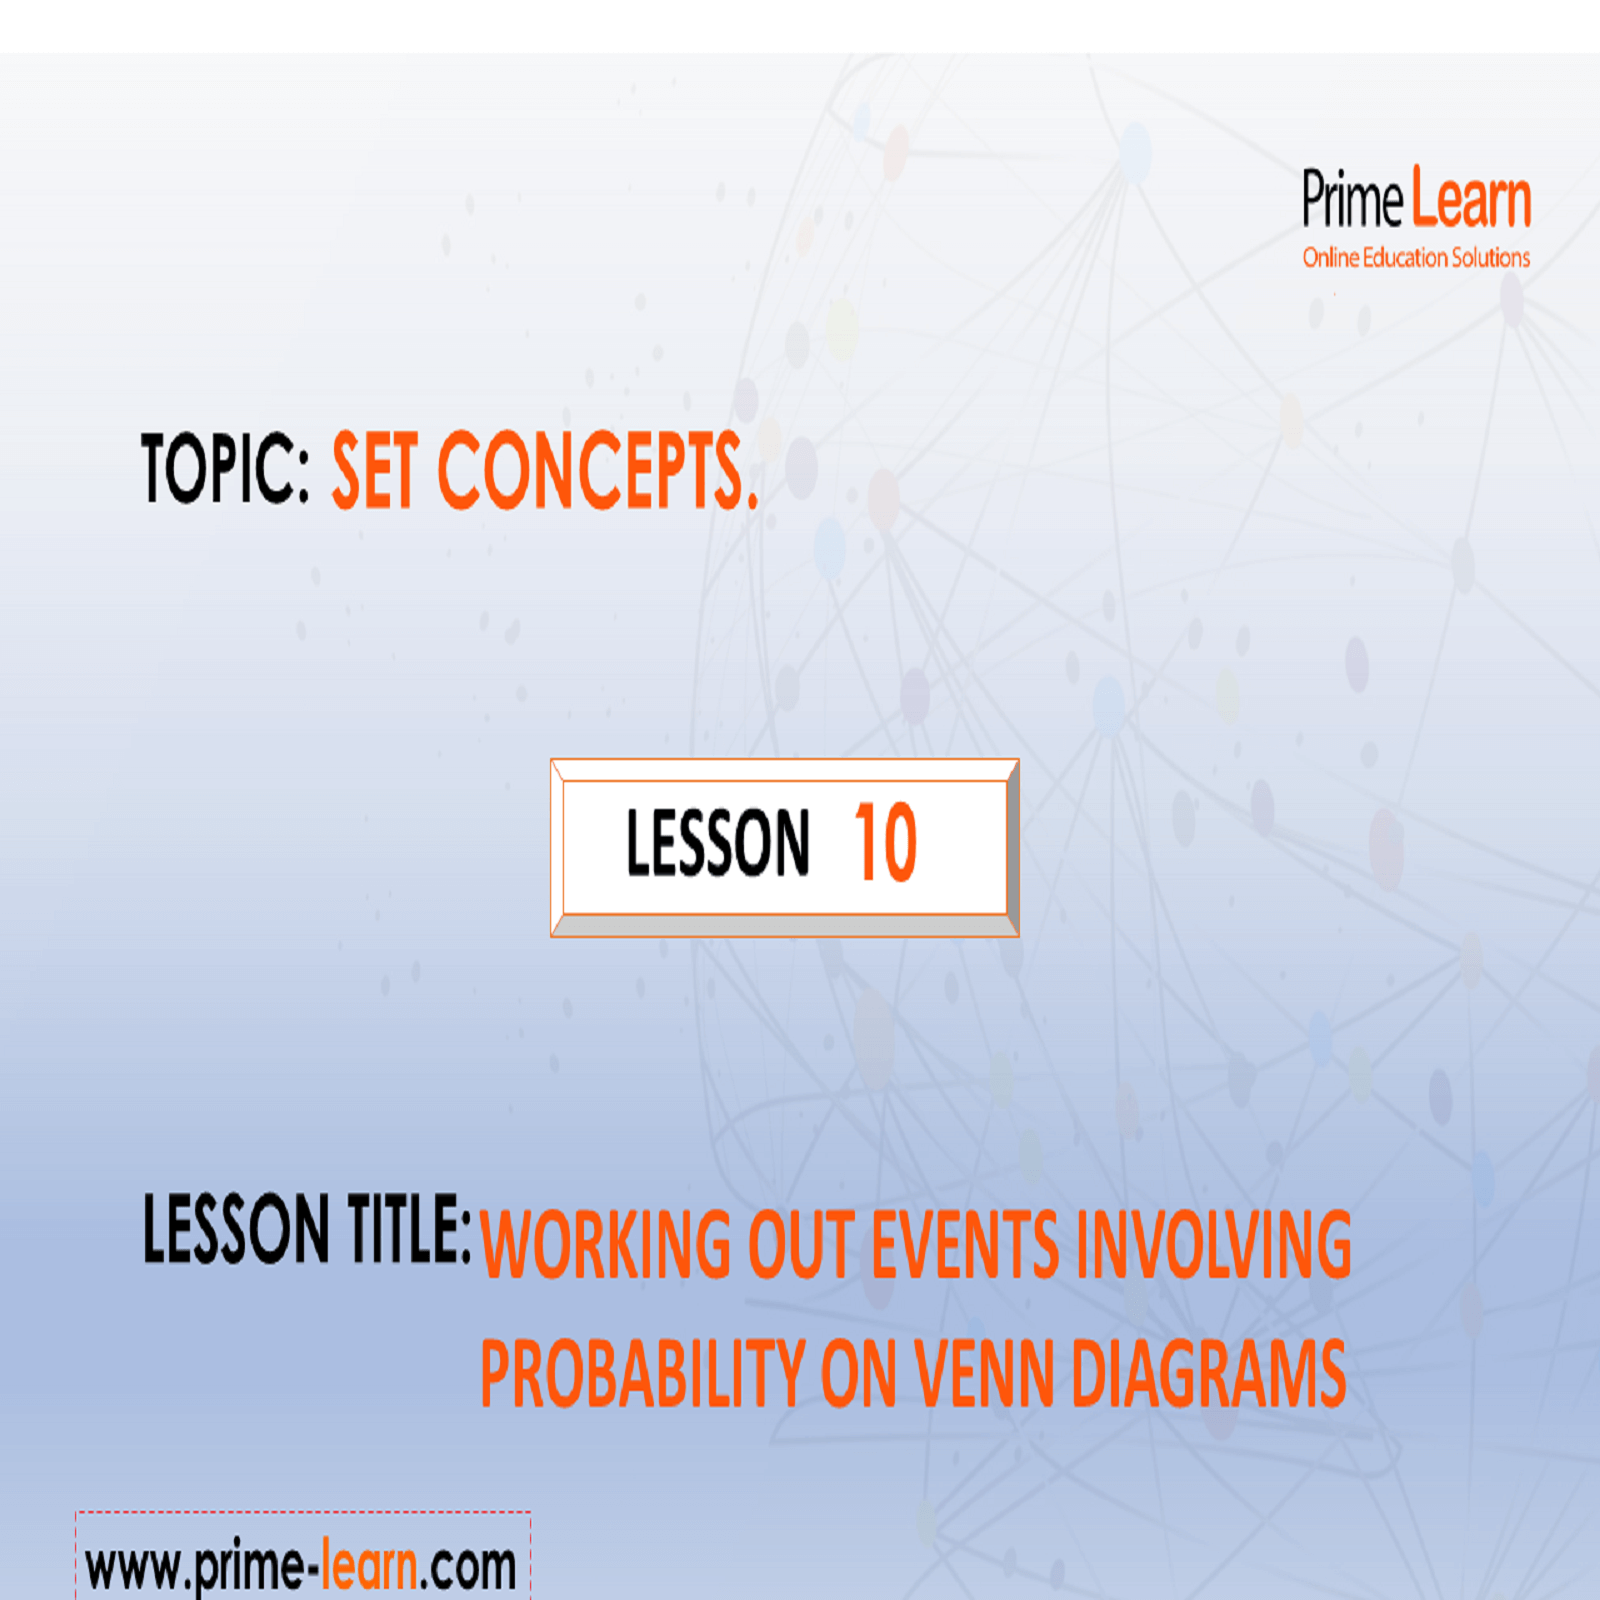 10 Working Out Events Involving Probability On Venn